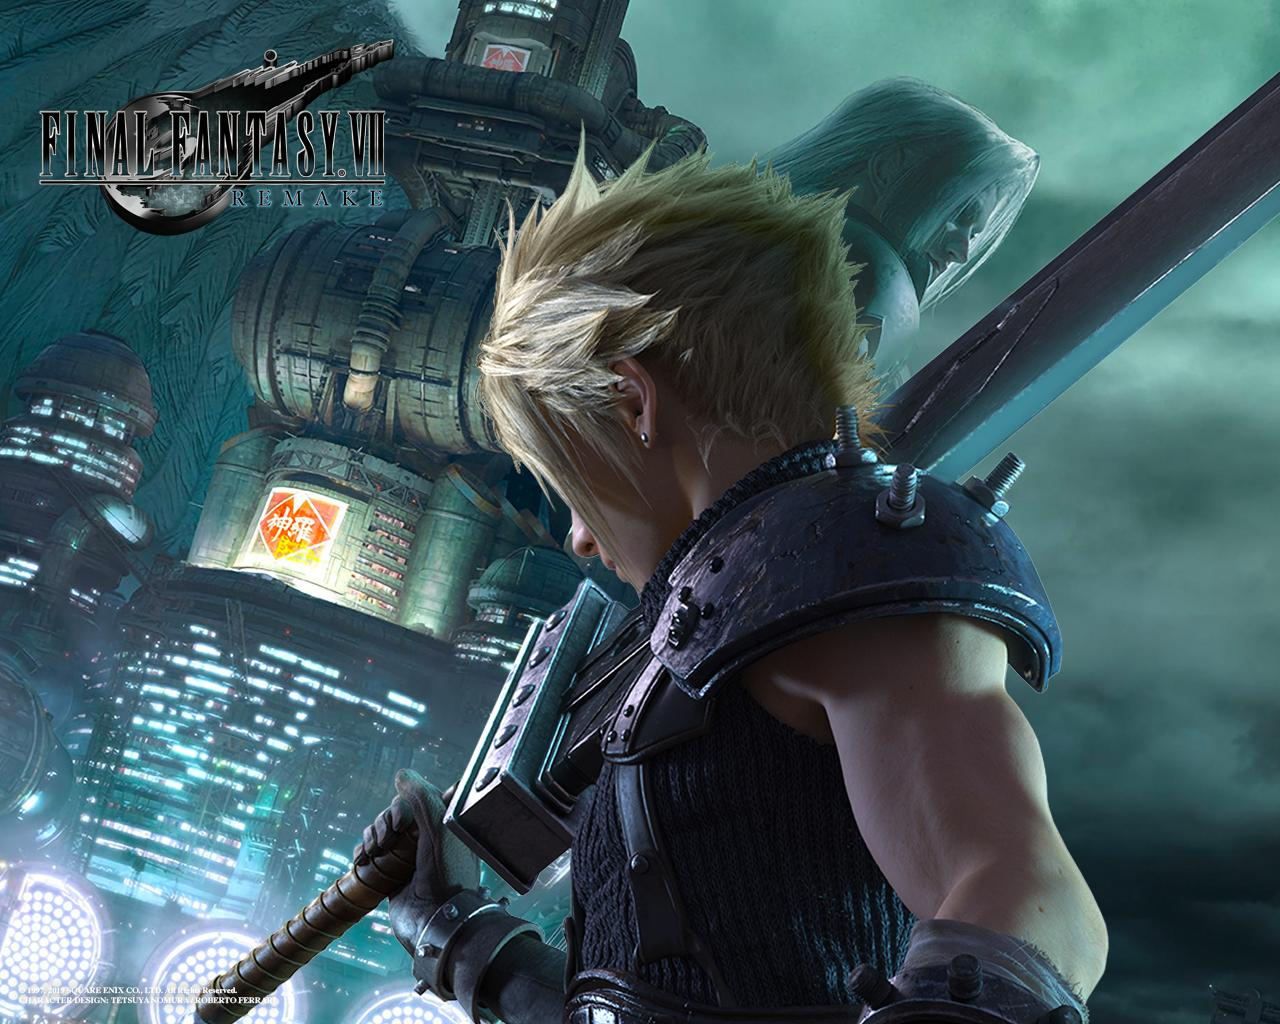 Stunning Final Fantasy 7 Wallpaper Hd 1920x1080 images For